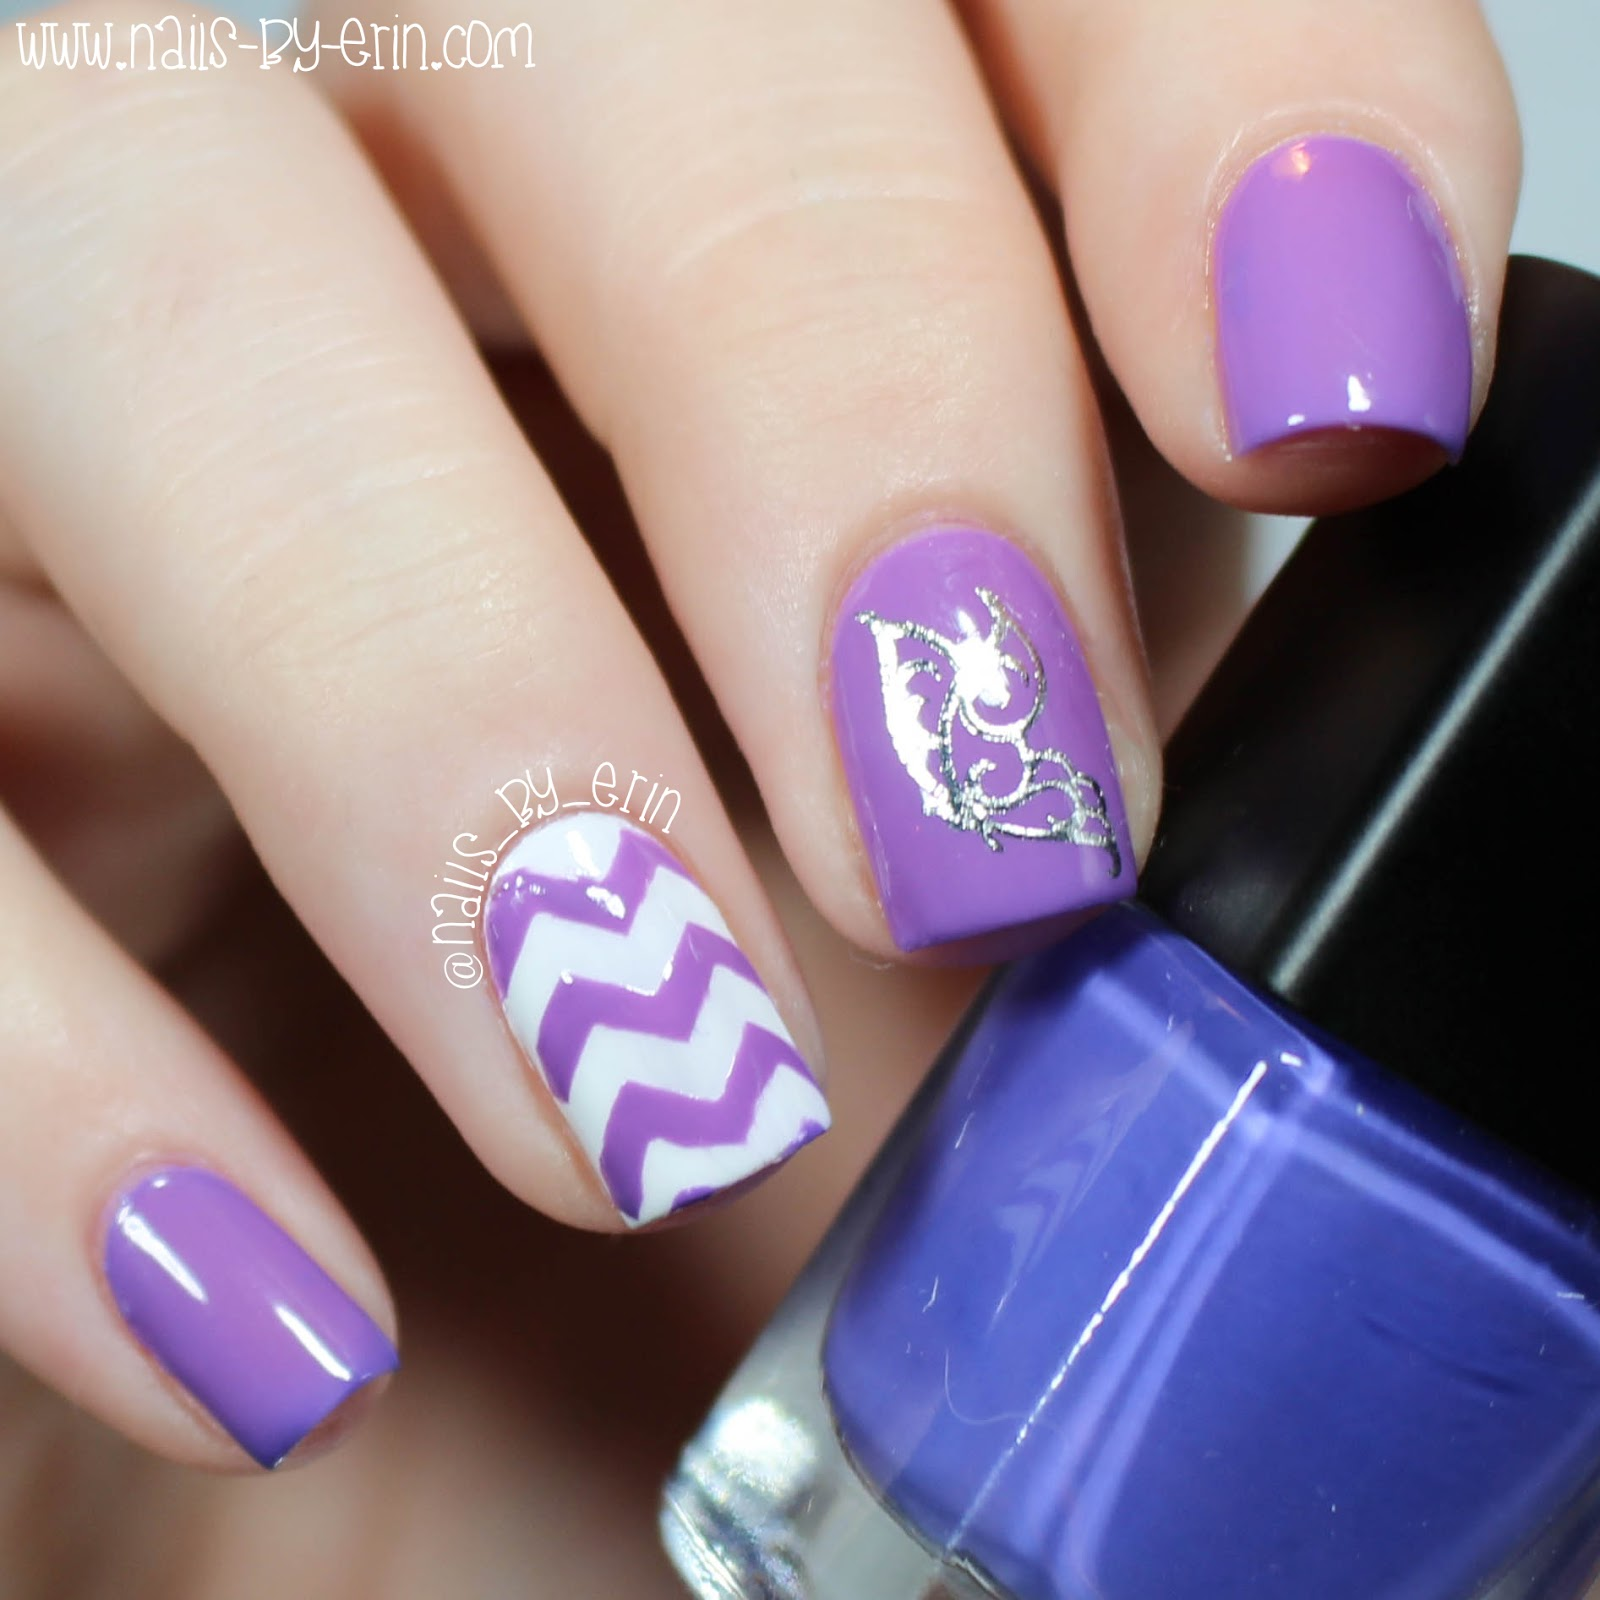 NailsByErin: Thermal Butterfly Decal Nails | Born Pretty Store Review